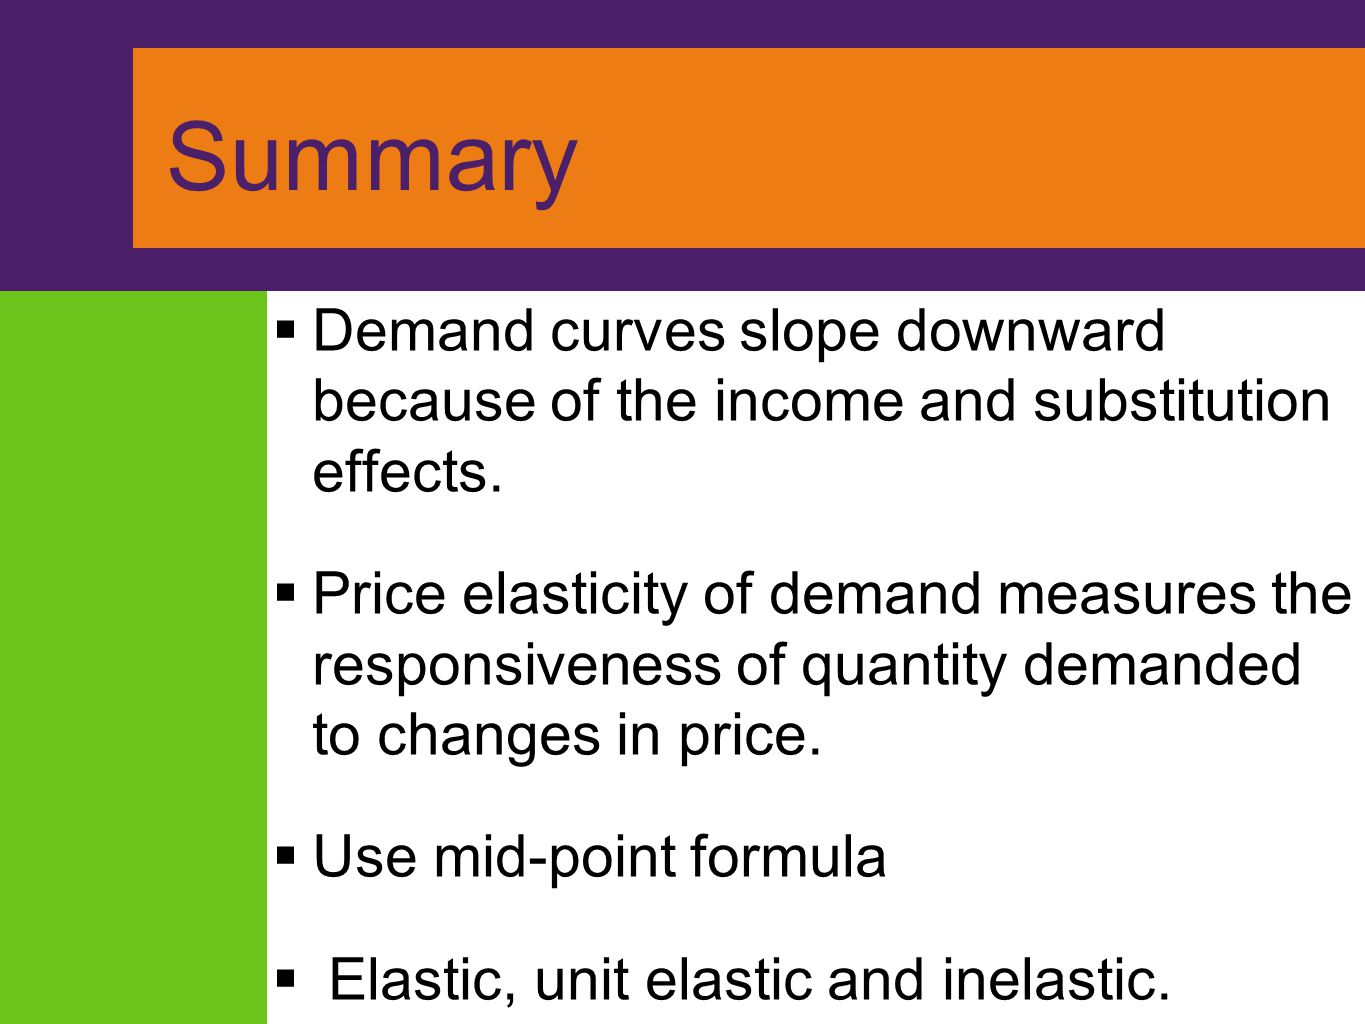 Summary Demand curves slope downward because of the income and substitution effects.